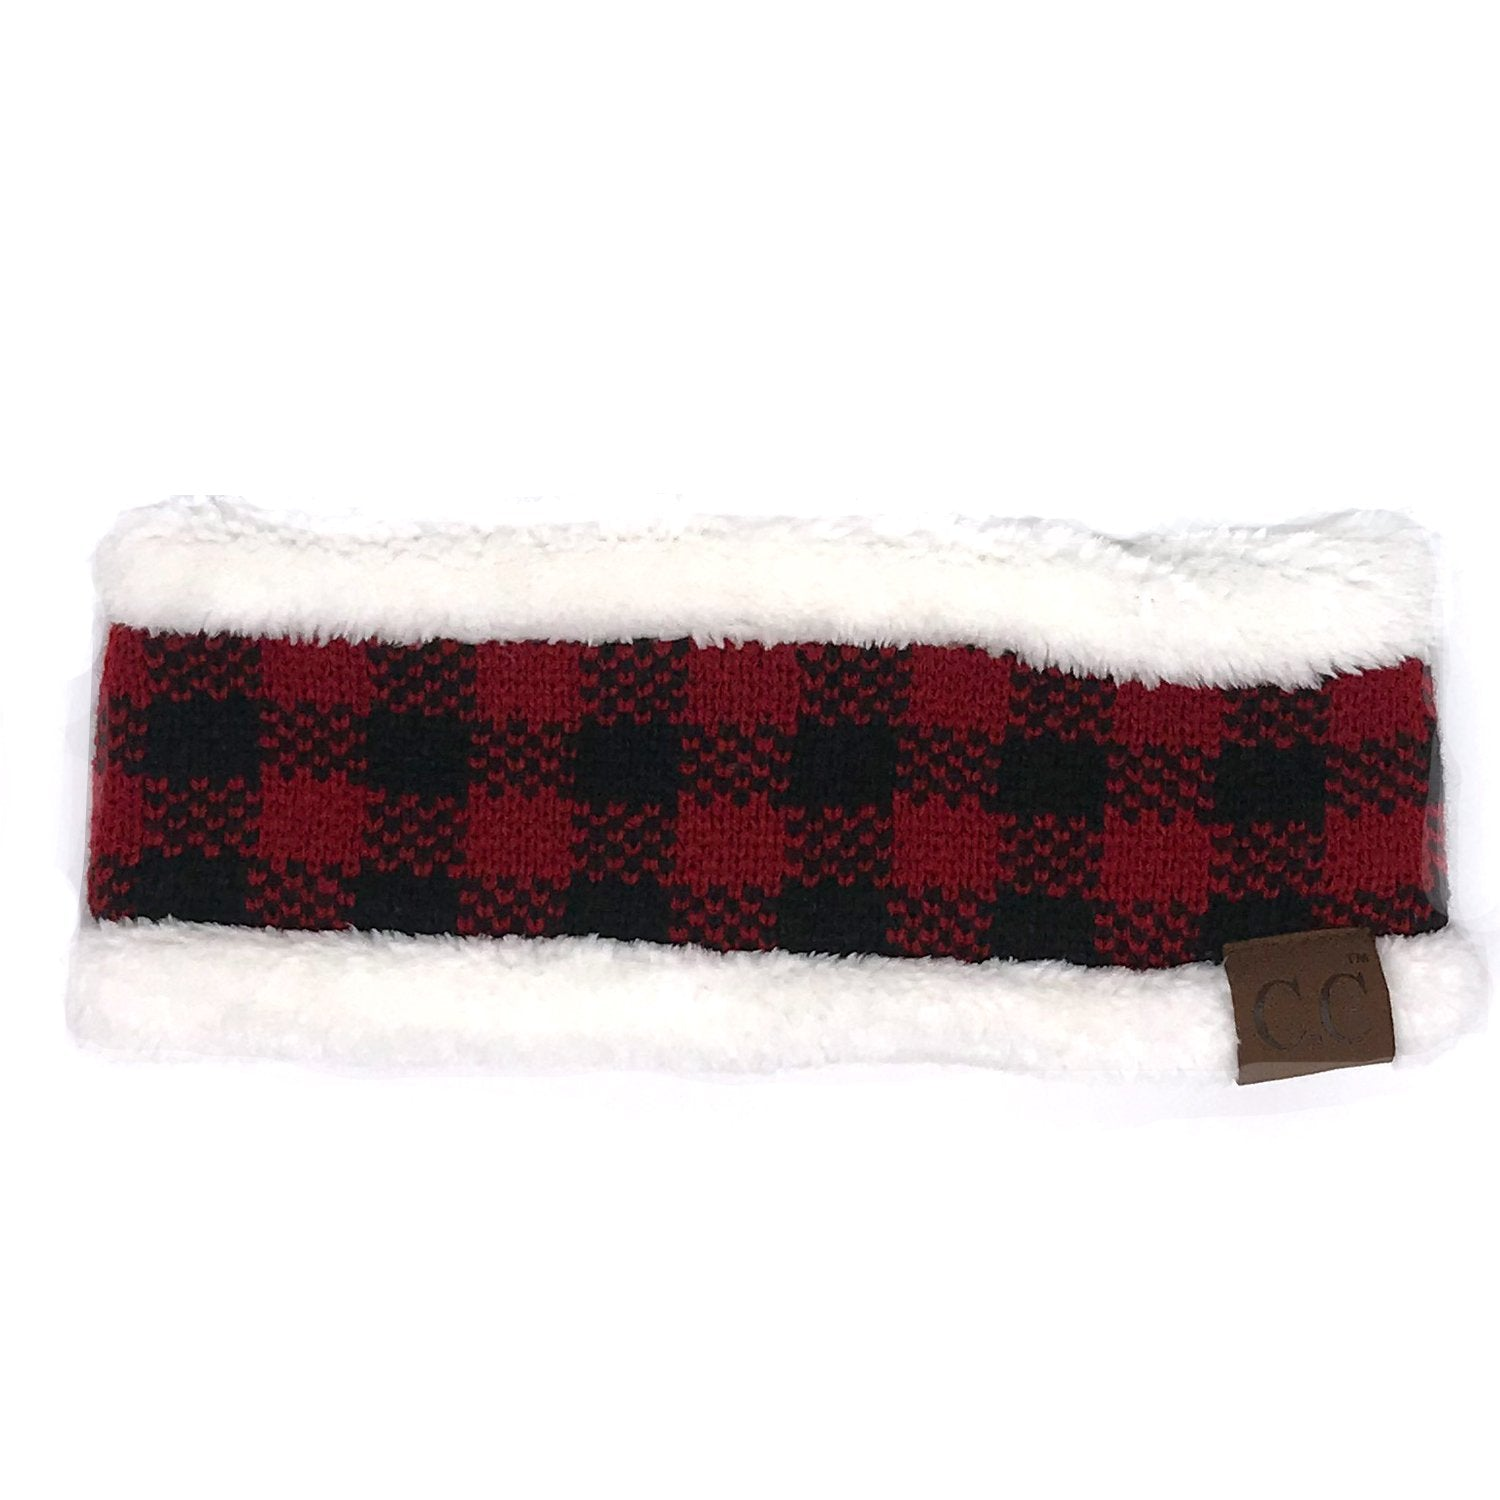 HW-17 BUFFALO PLAID IVORY RED/BLACK